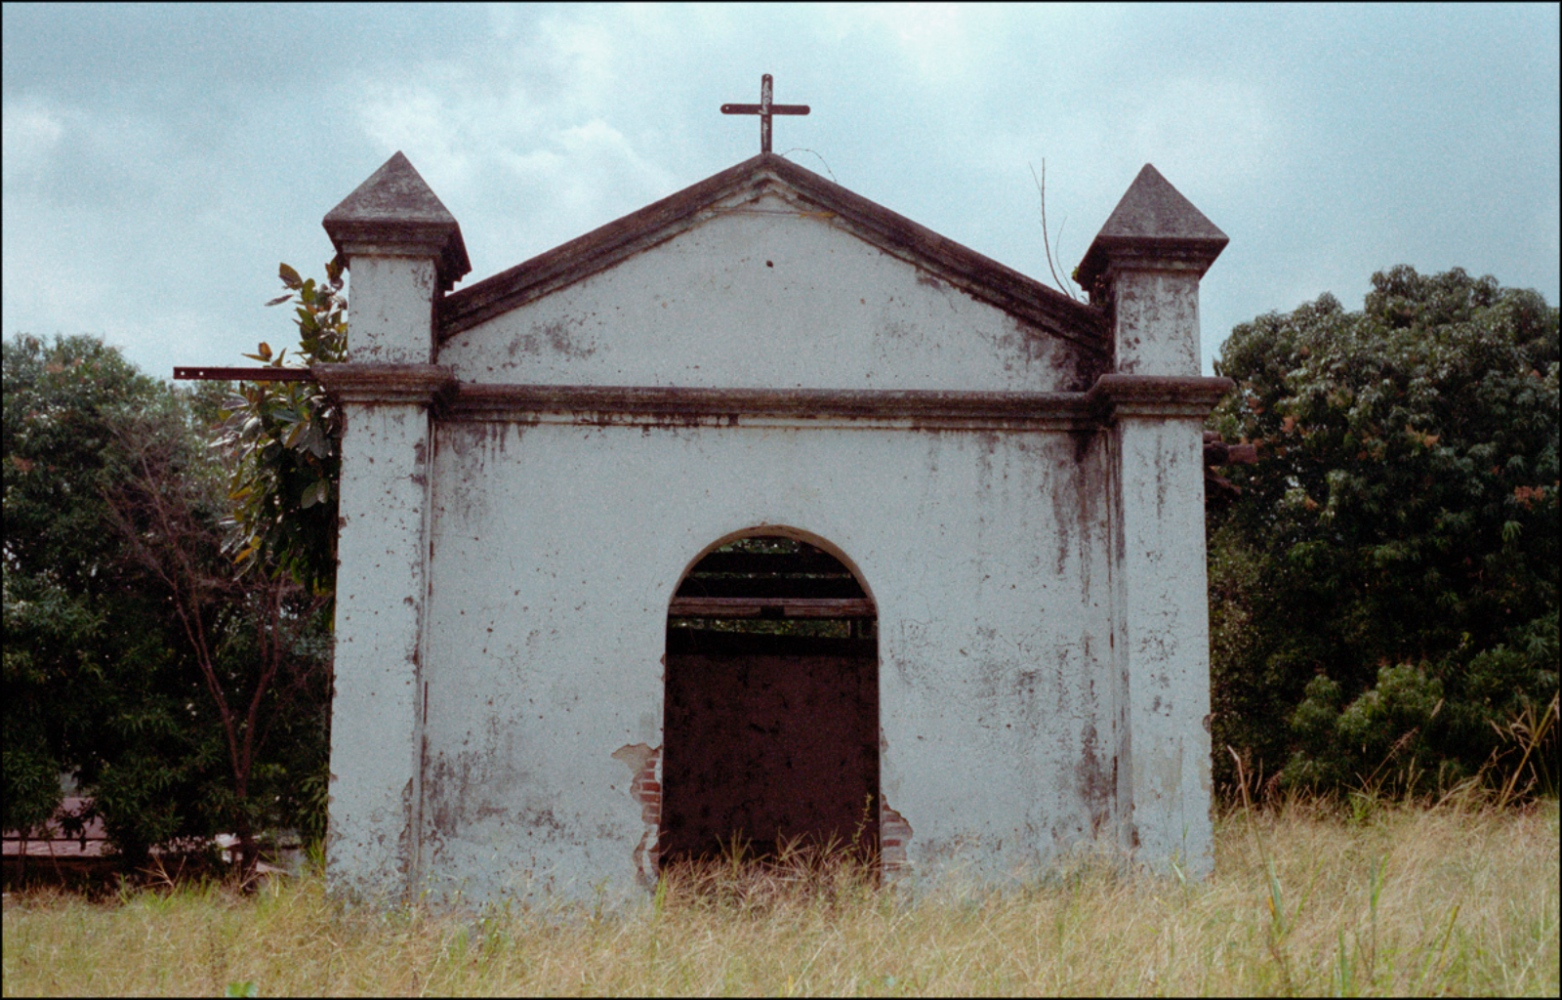 Abandoned Church, Driving through Guatemala, April 2006